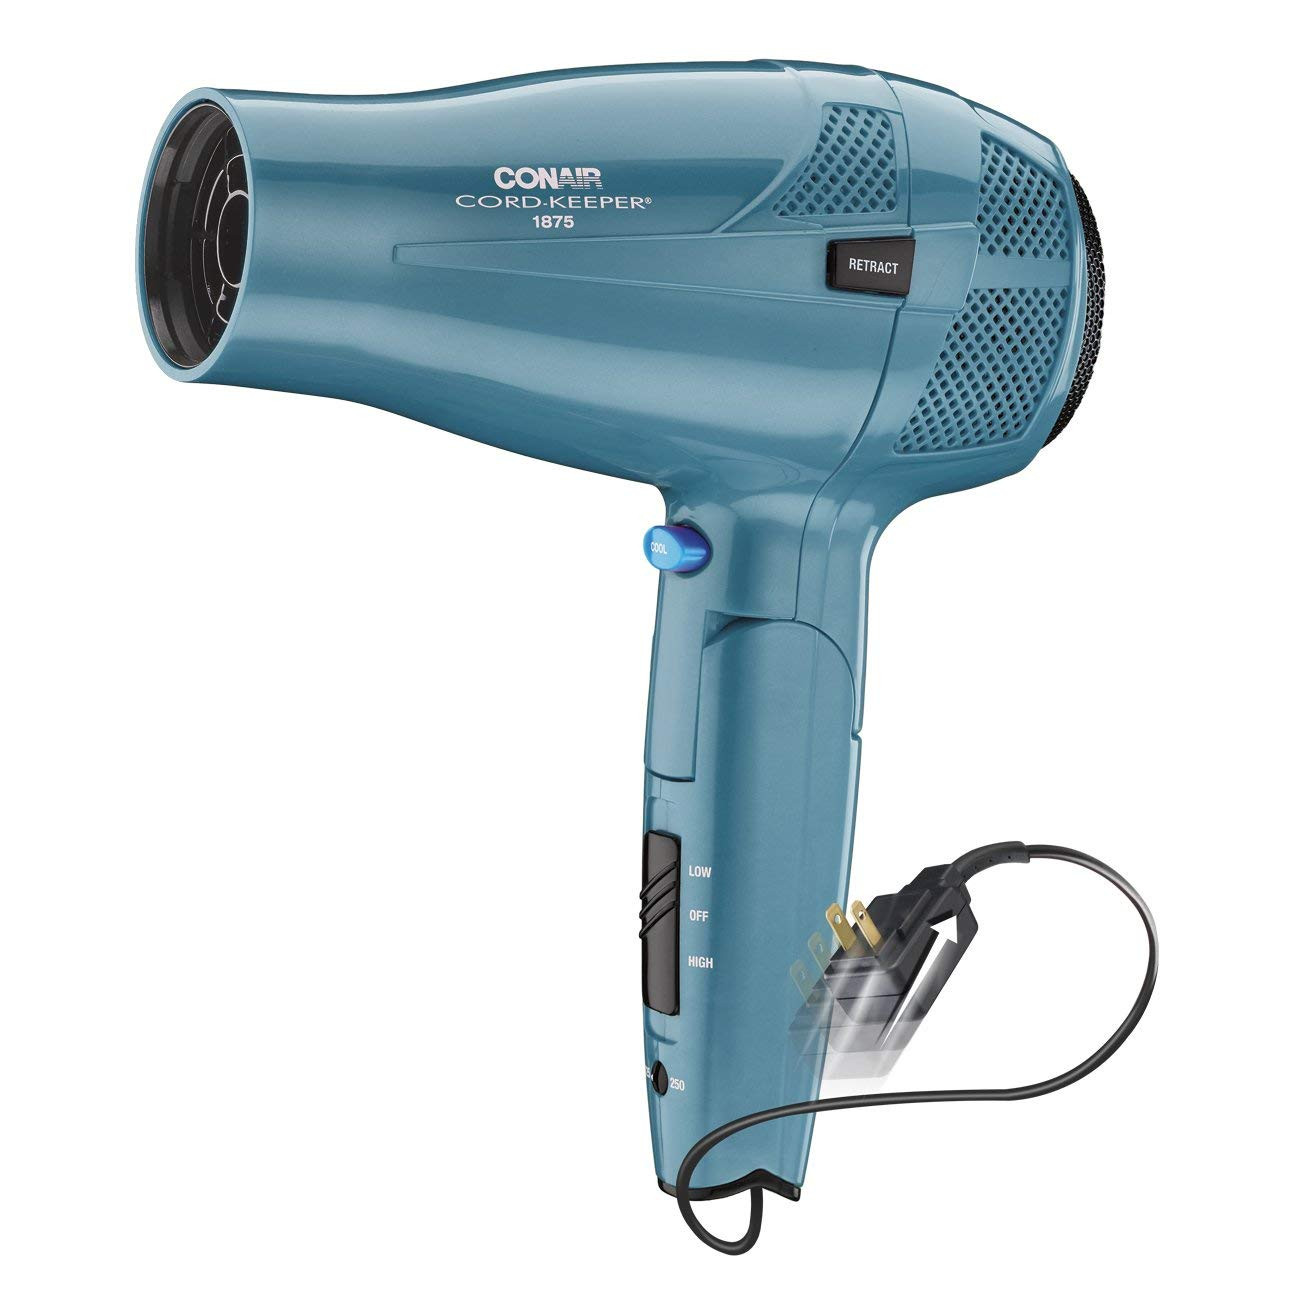 CONAIR 289NX 1,875-Watt Cord-Keeper Folding Dryer